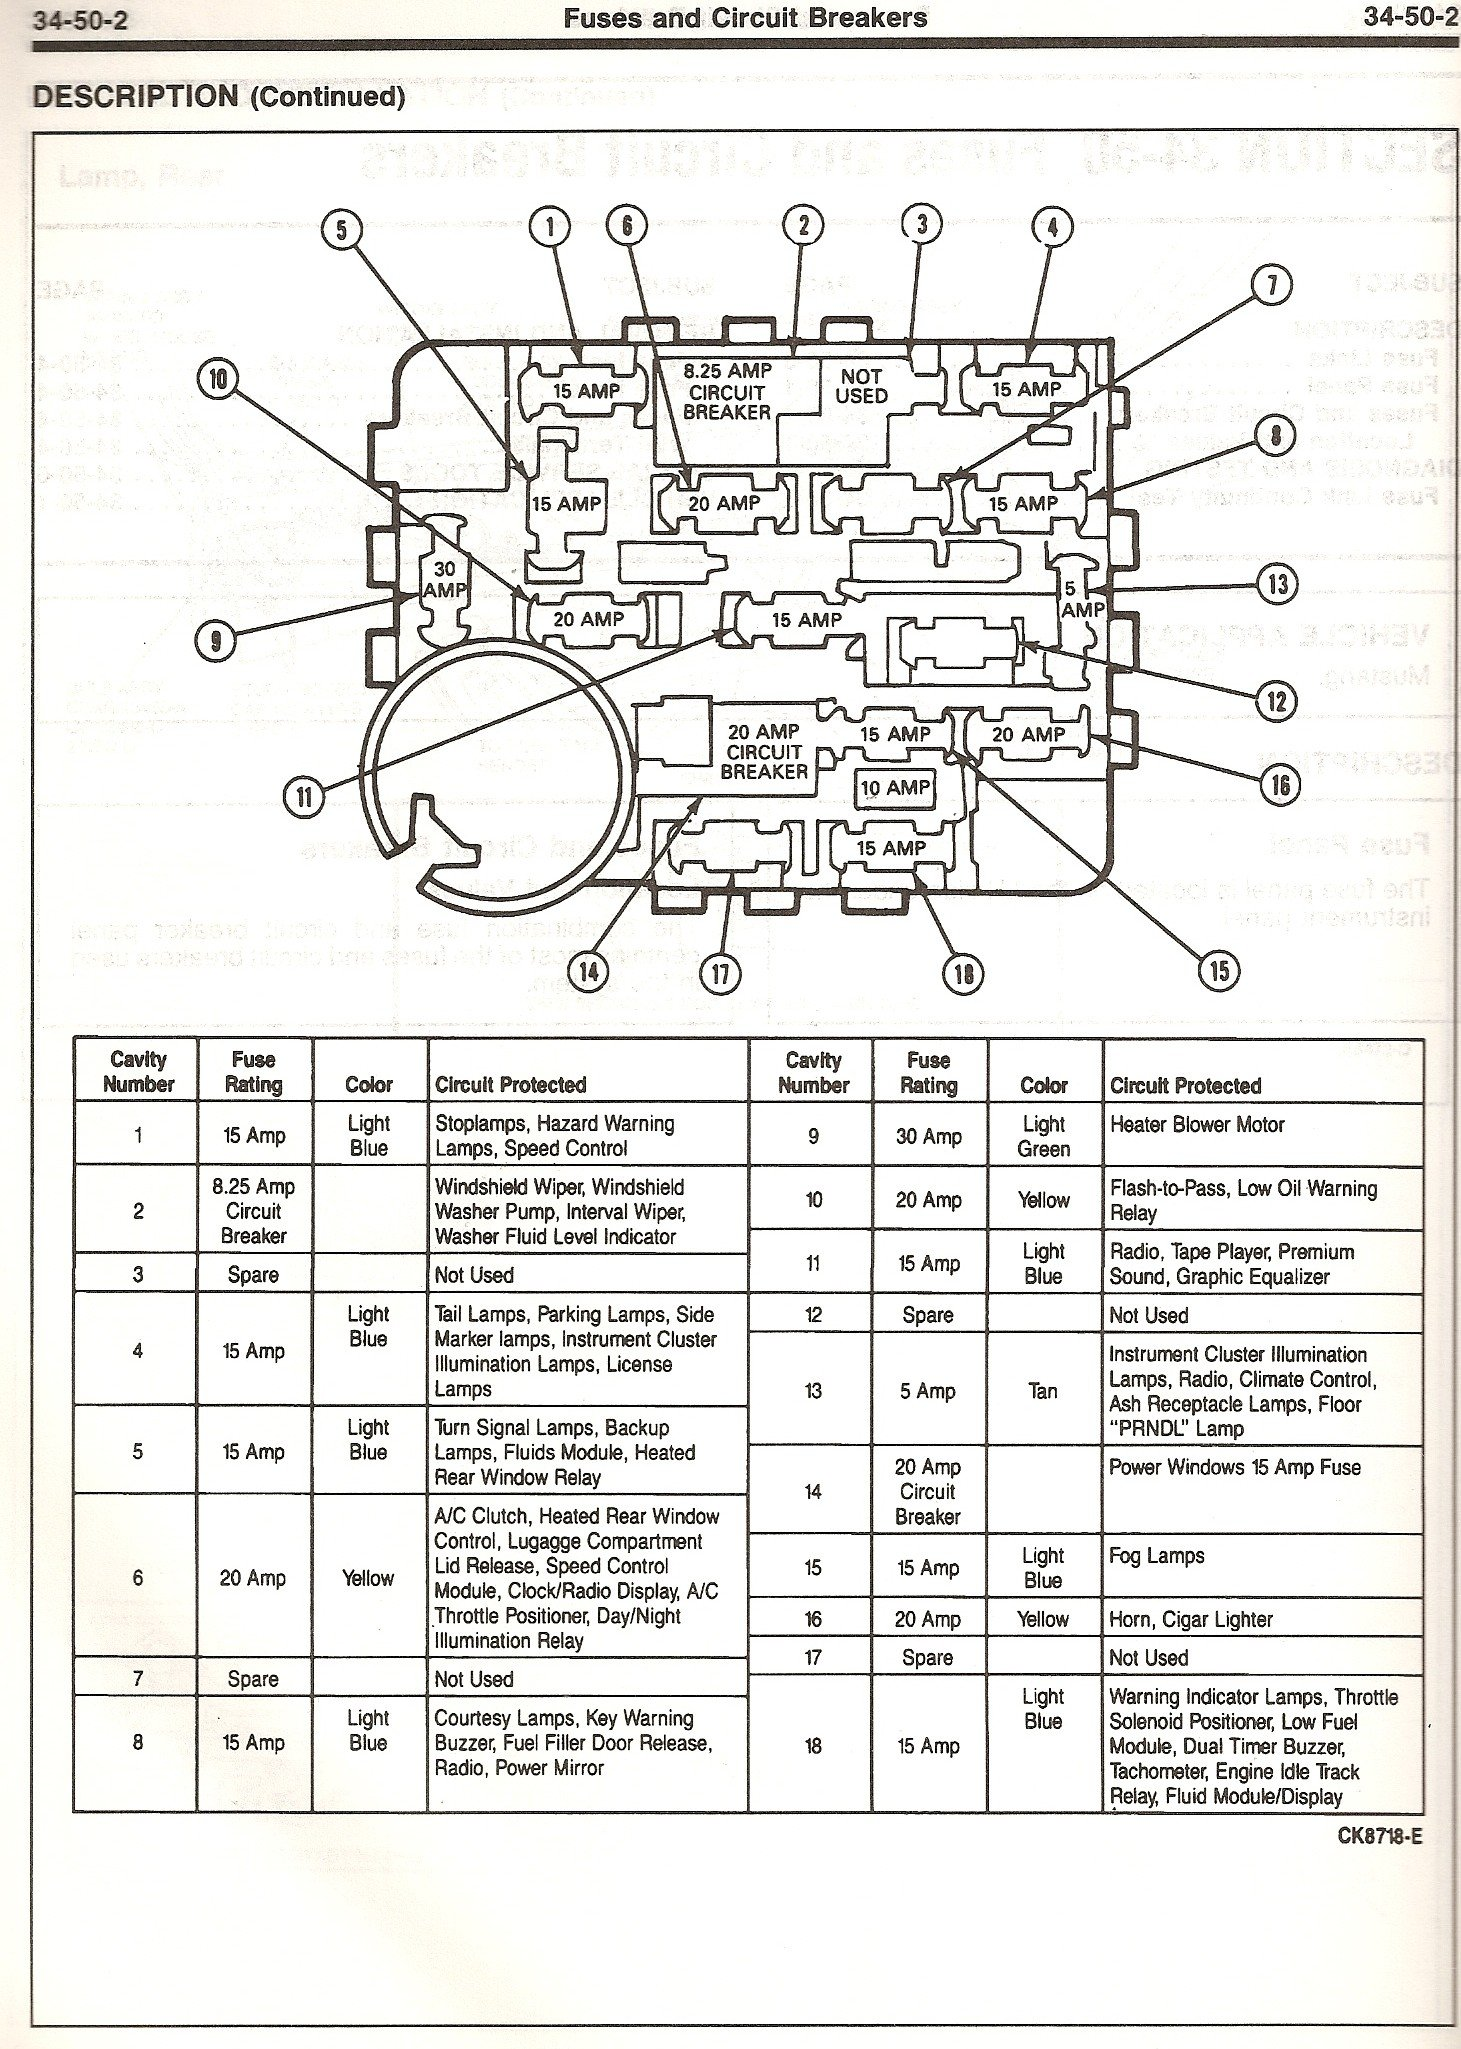 30633d1185070172 1990 2 3 mustang missing fuse panel diagram scan7 1990 2 3 mustang missing fuse panel diagram ford mustang forum 1992 ford mustang lx fuse box diagram at nearapp.co